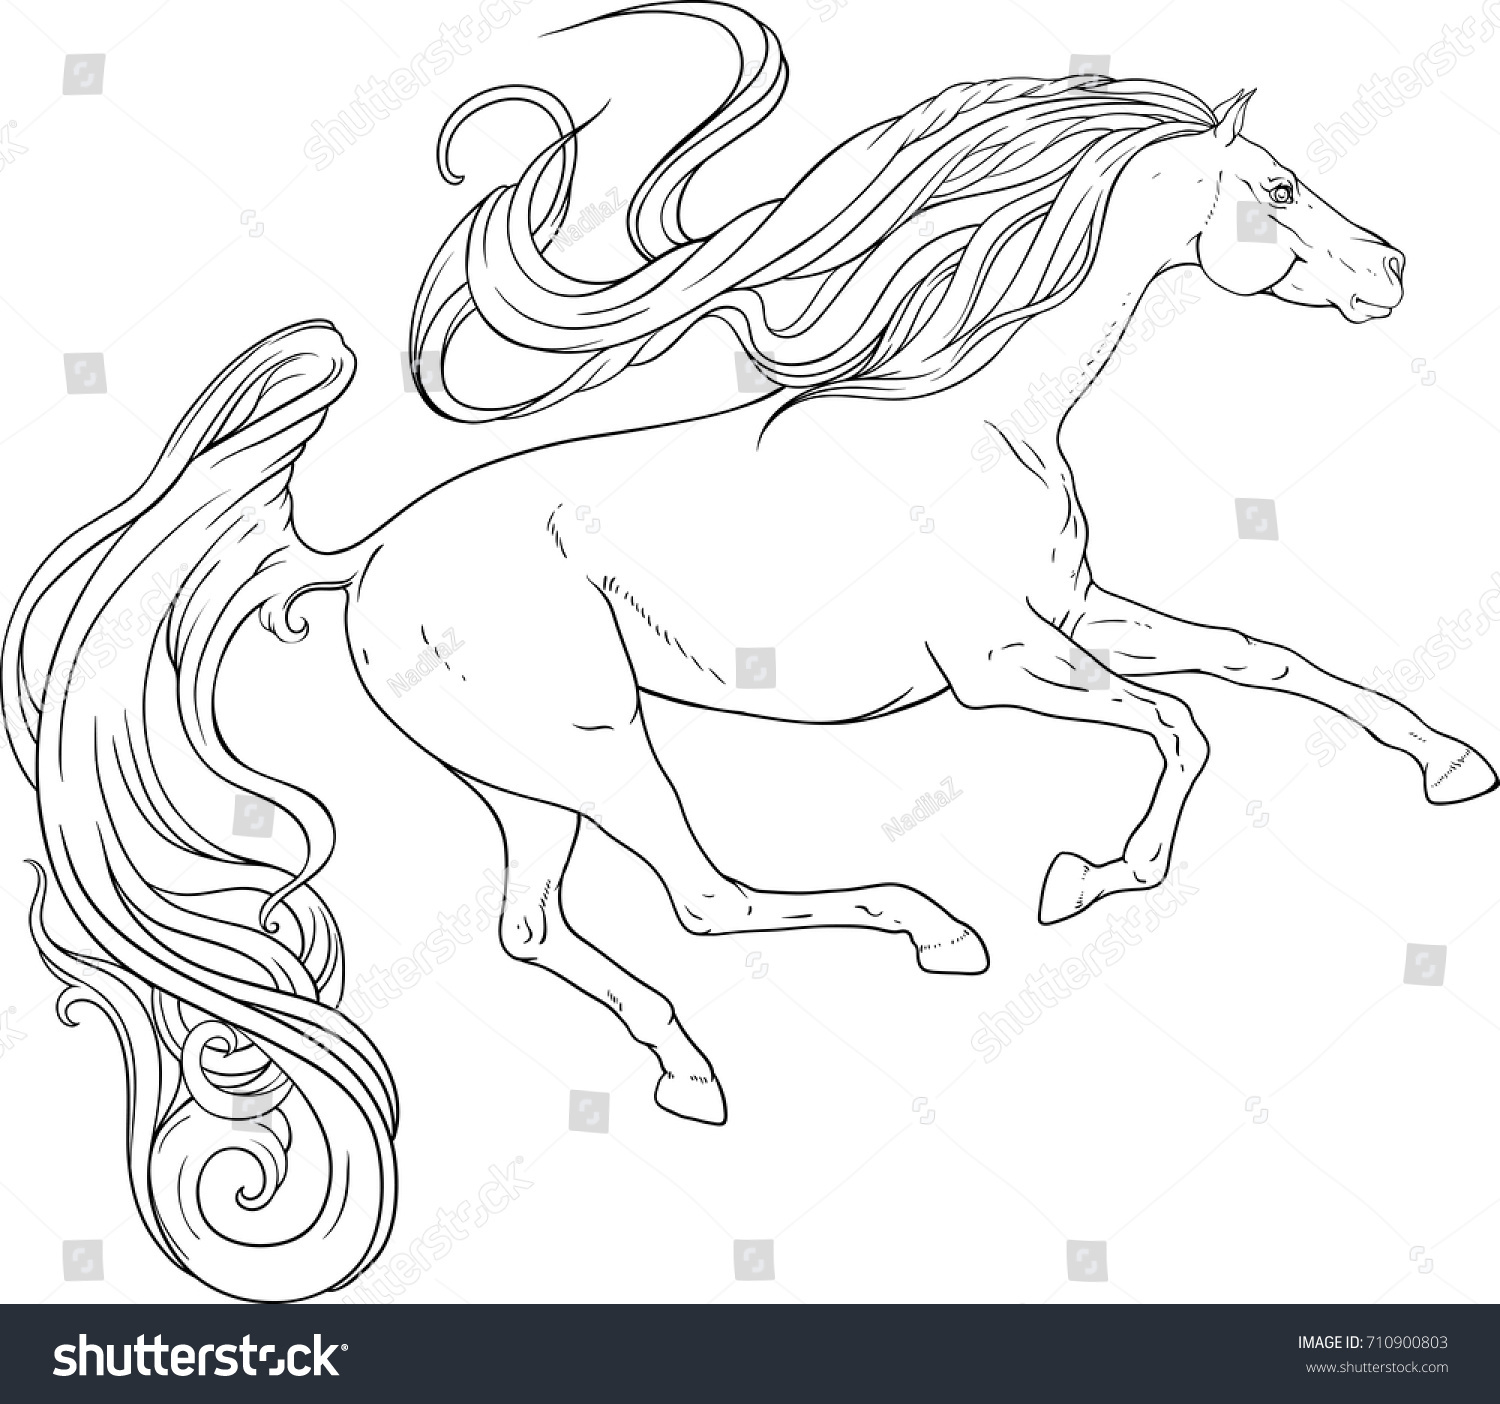 Running Horse Curly Tail Mane Coloring Stock Vector 710900803 ...